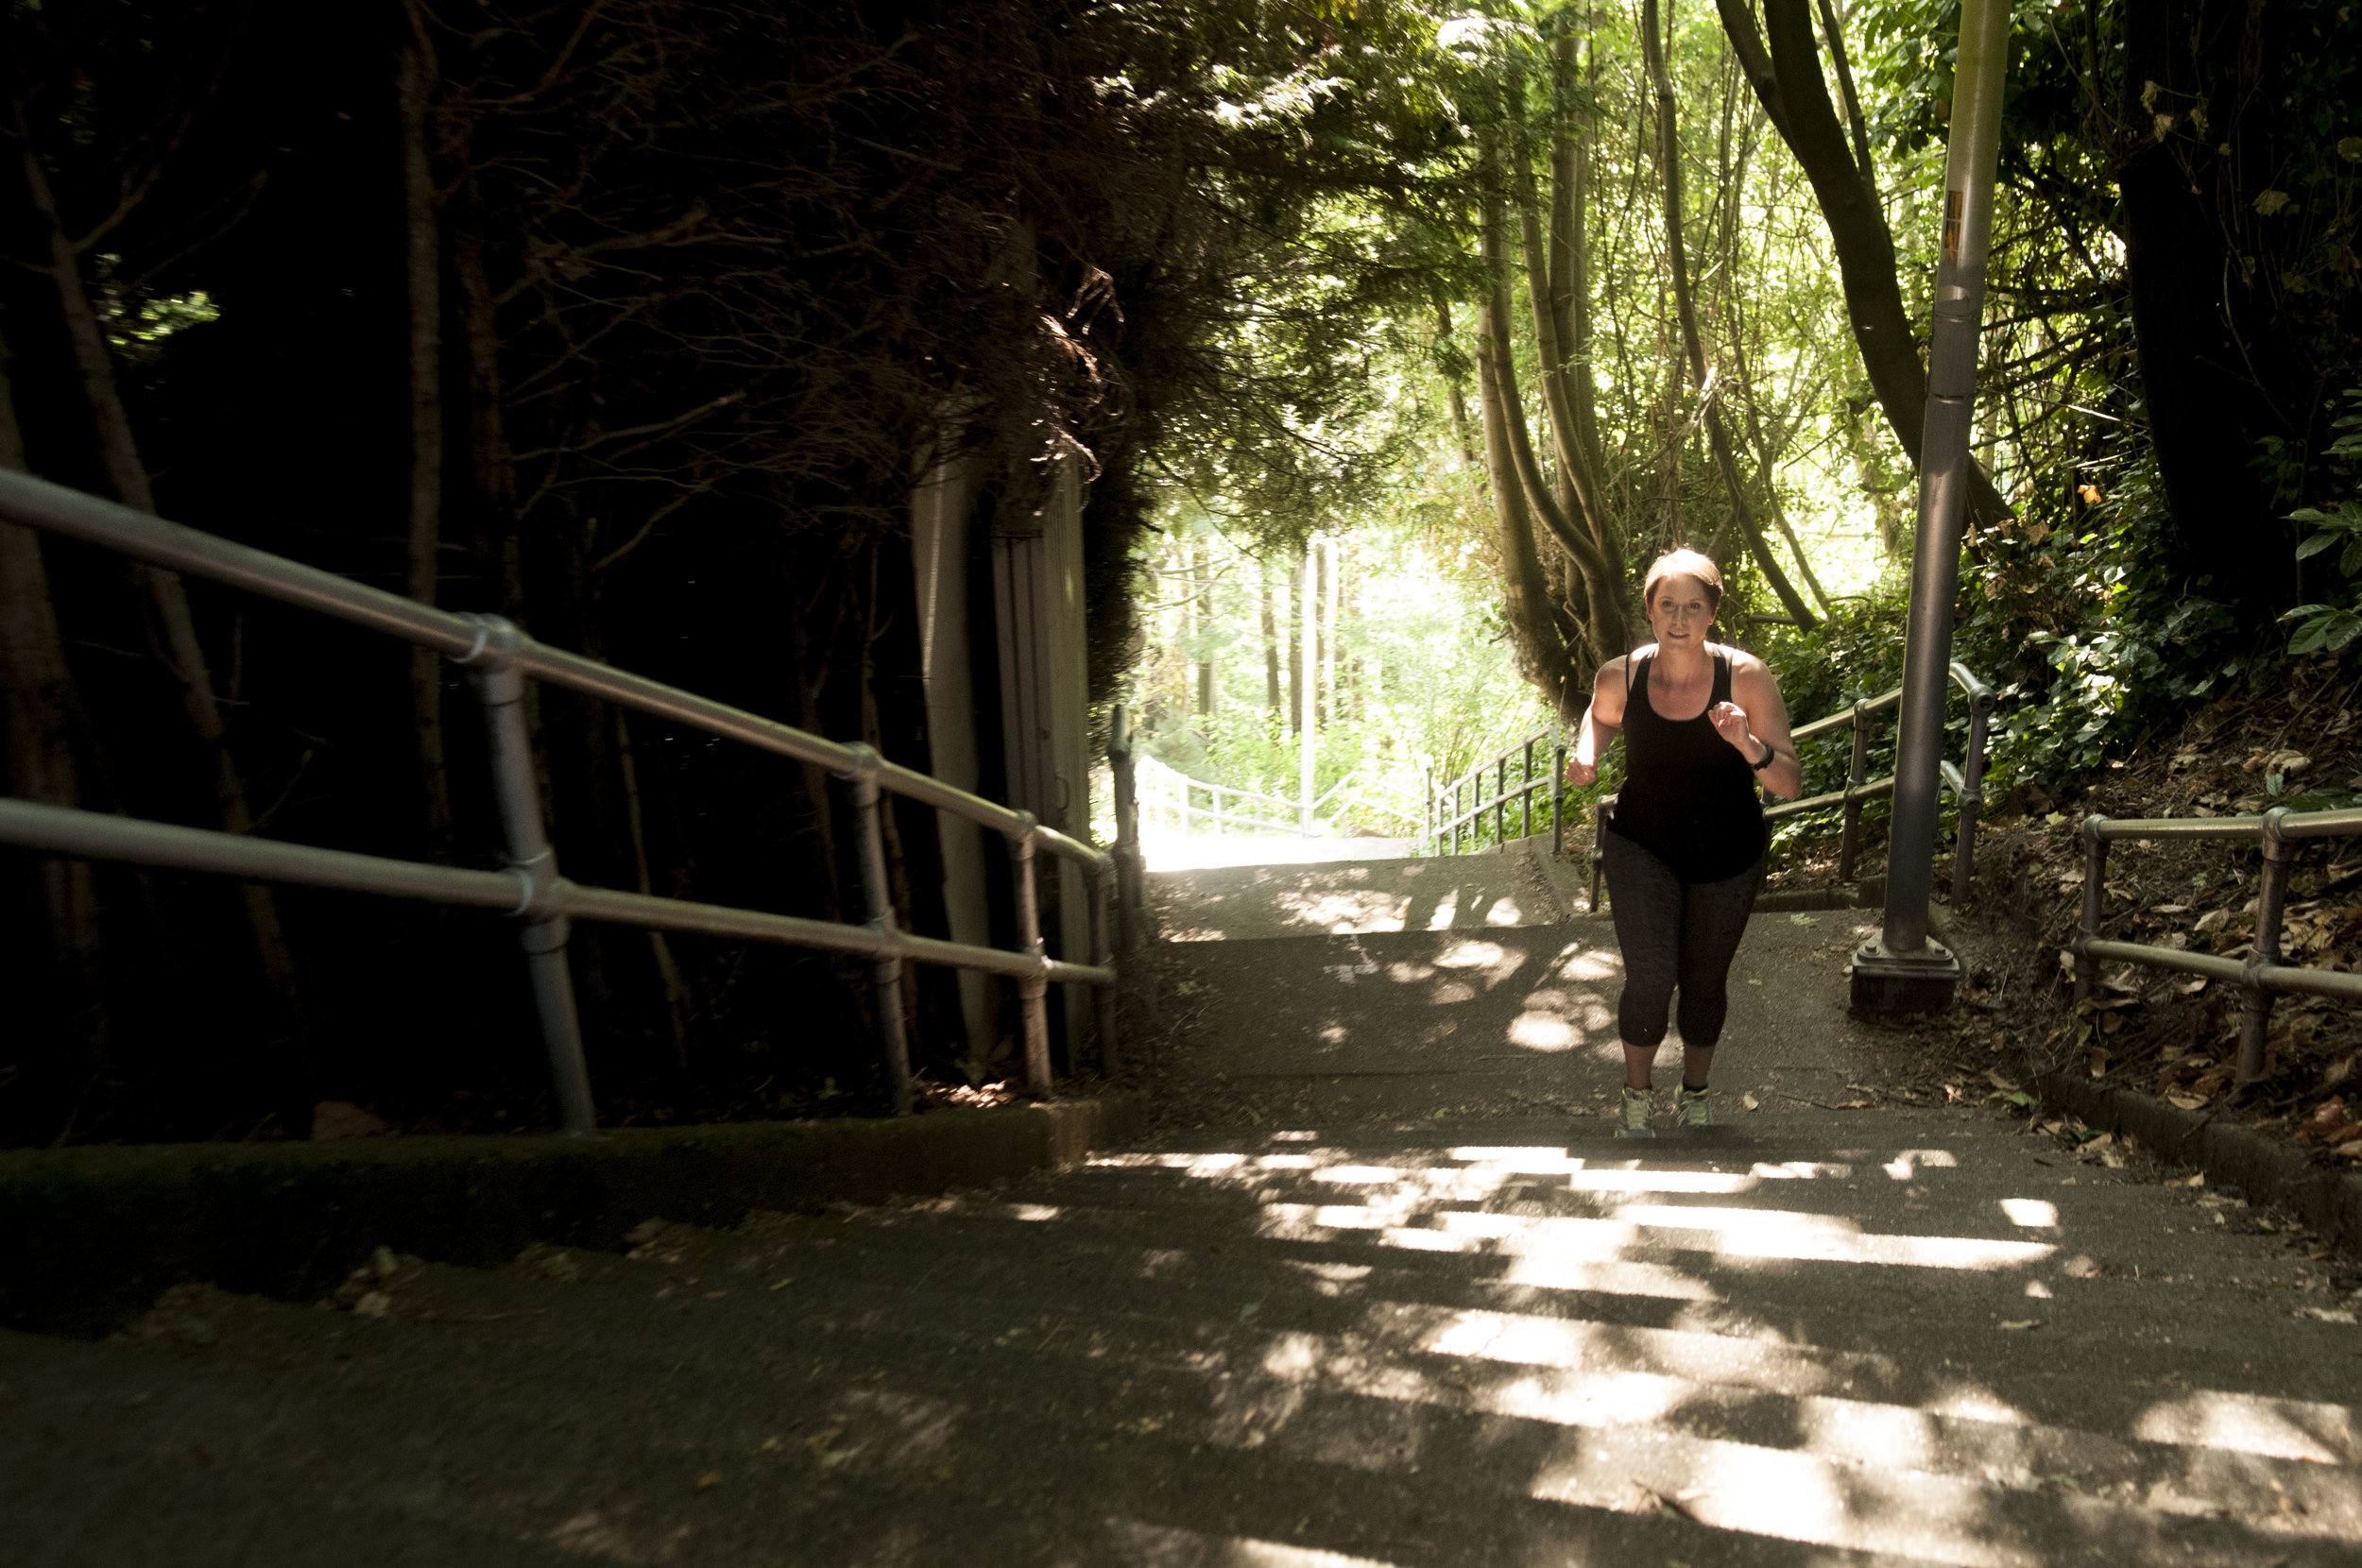 The Blaine Street Stairs are a favorite training challenge for DeAnna when gearing up for a rigorous hike. Photo by Nikolaj Lasbo.